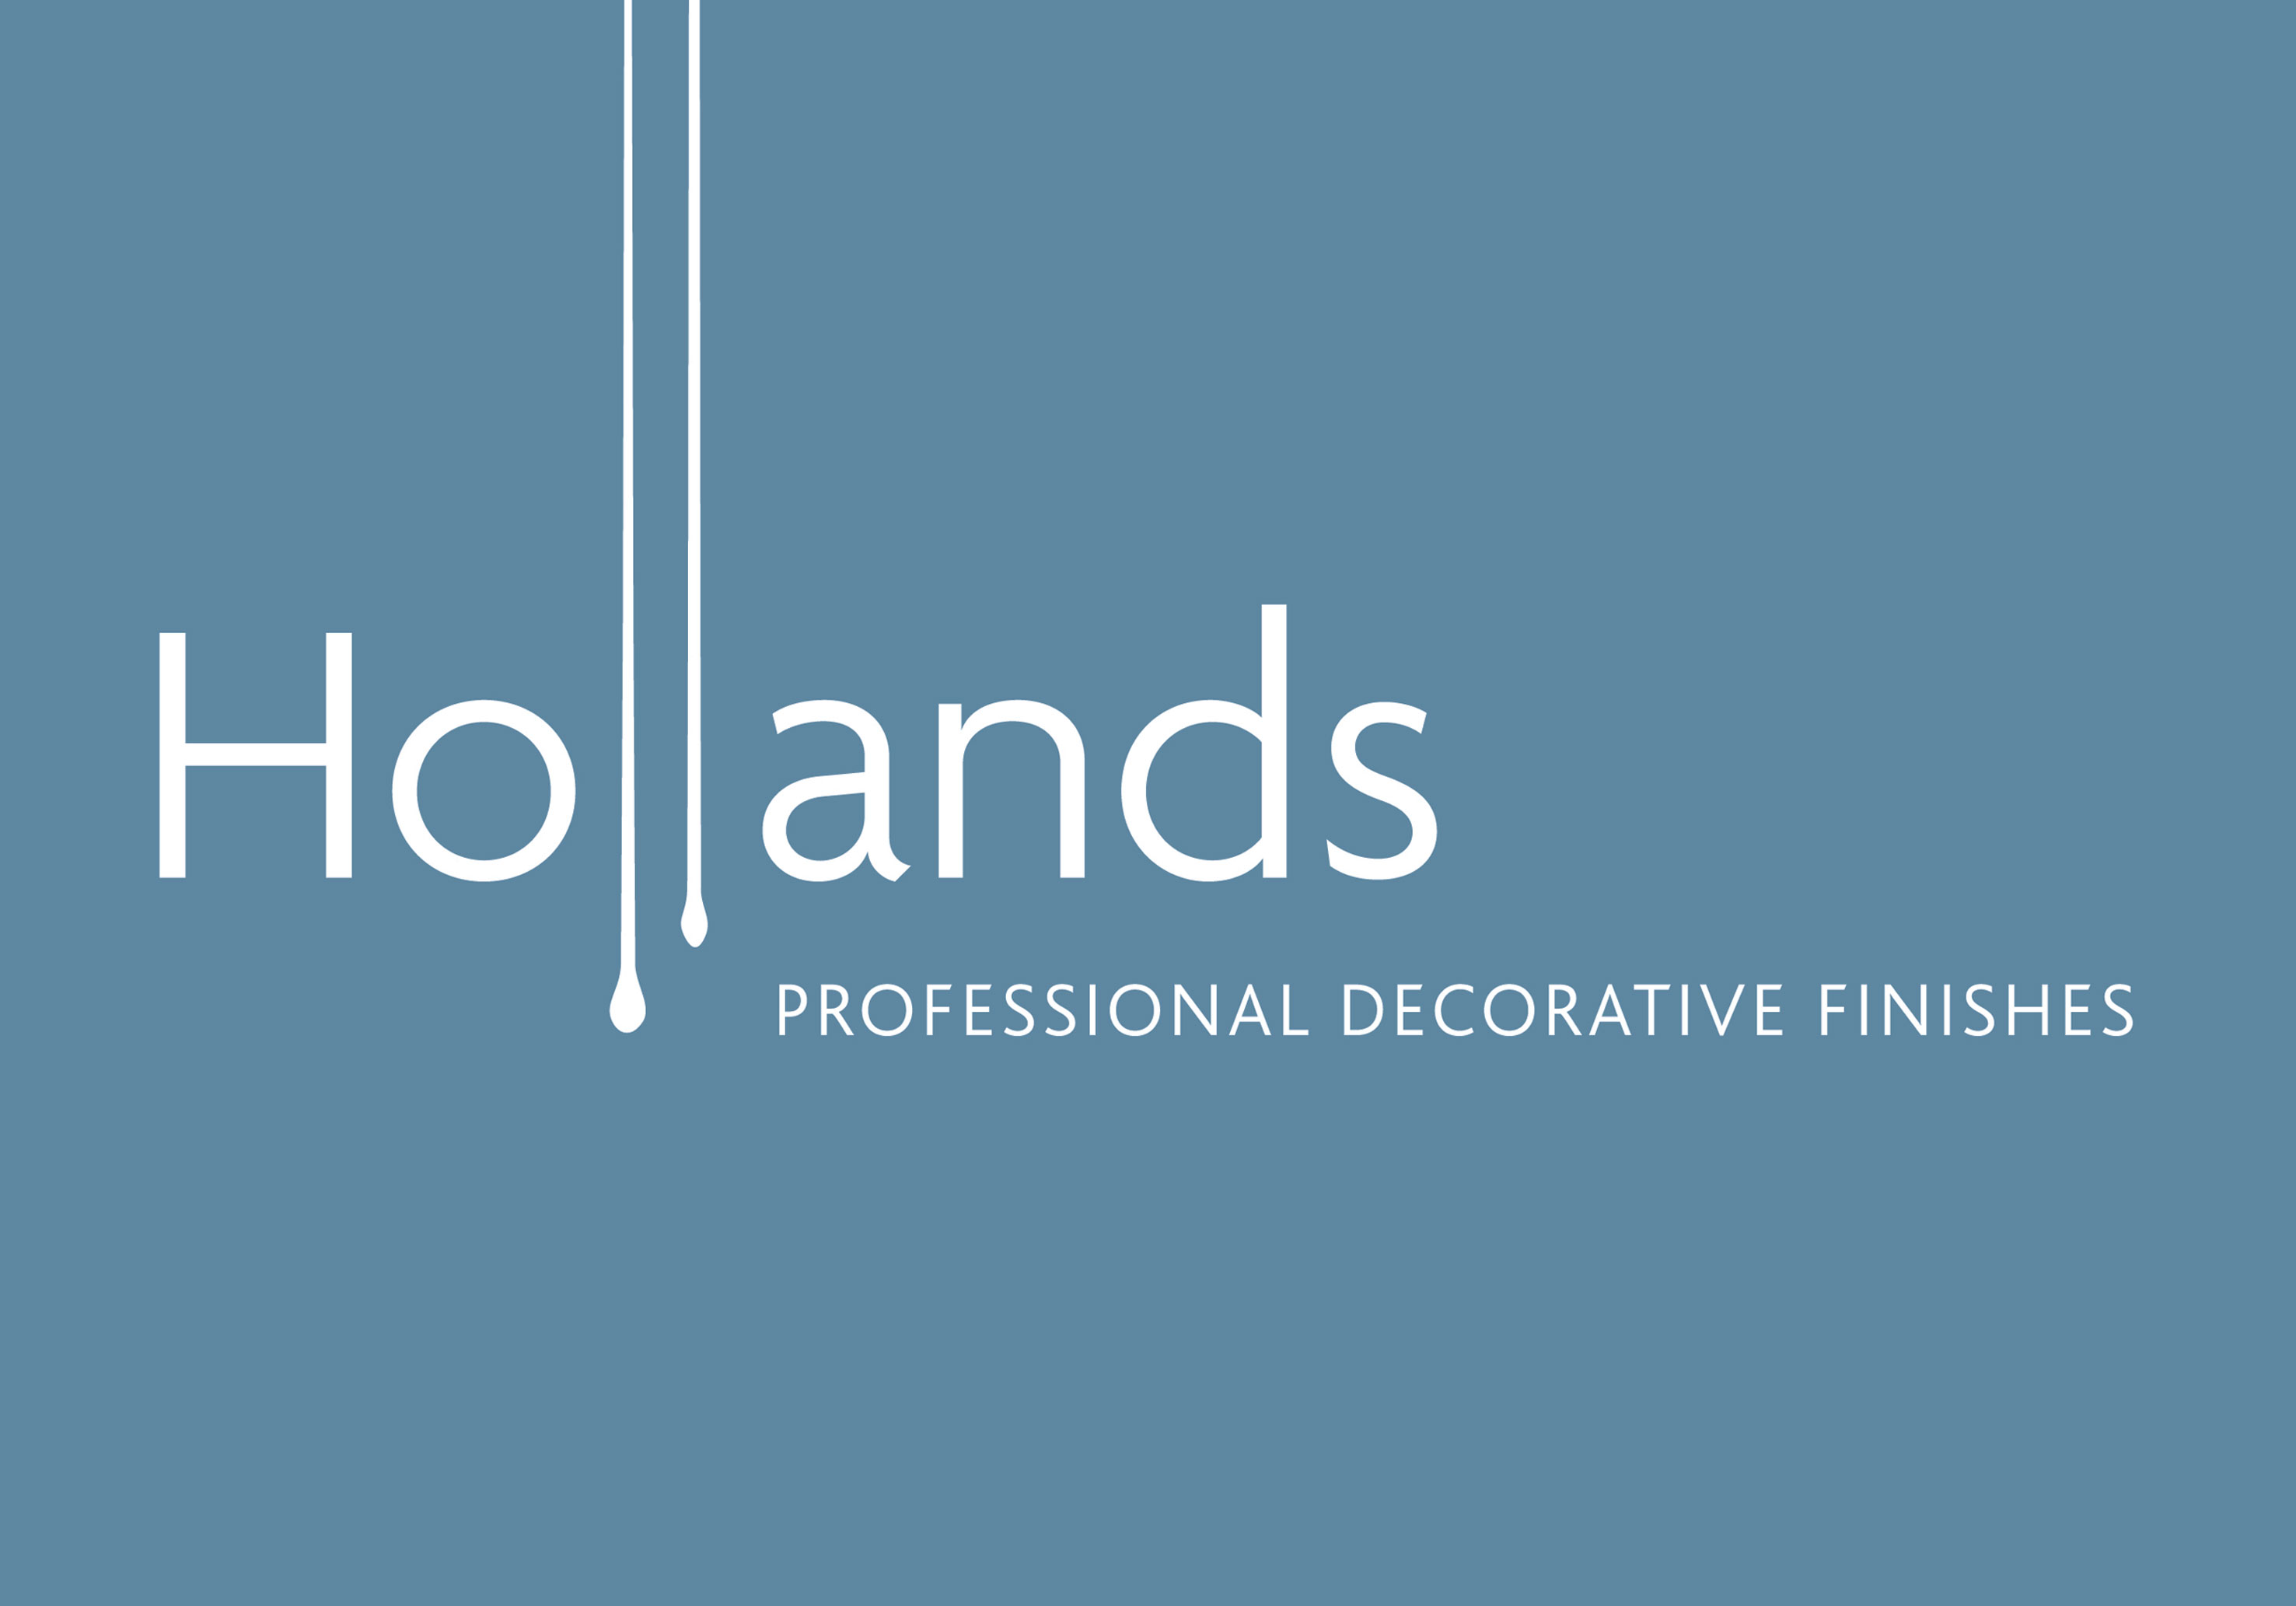 Hollands Professional Decorative Finishes Logo